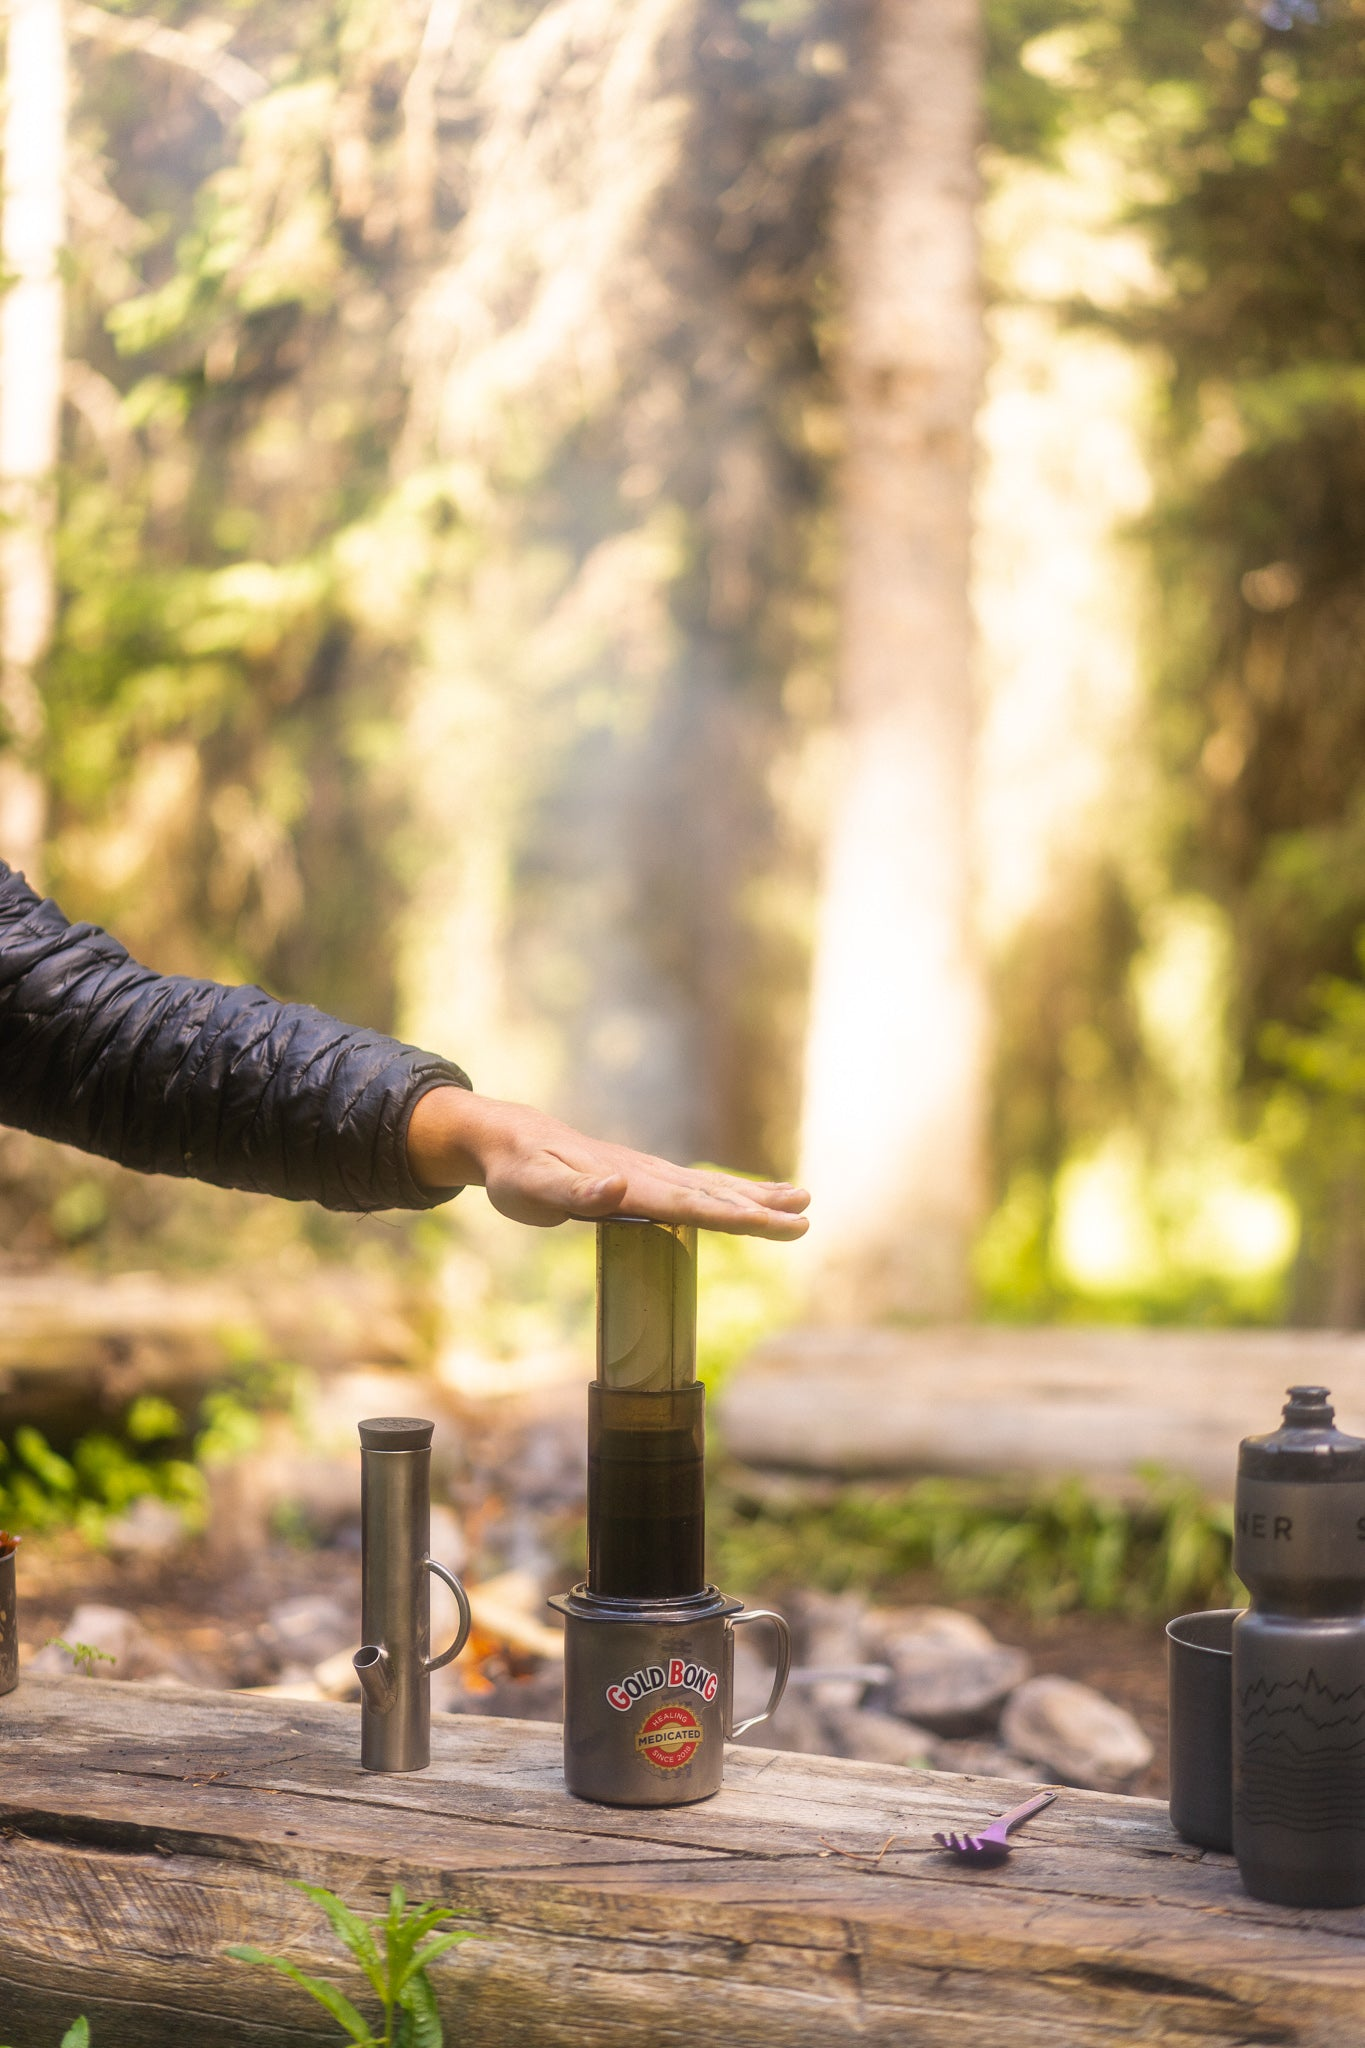 19 Ways to Make Coffee Outside & Camping - According to Dangle Supply